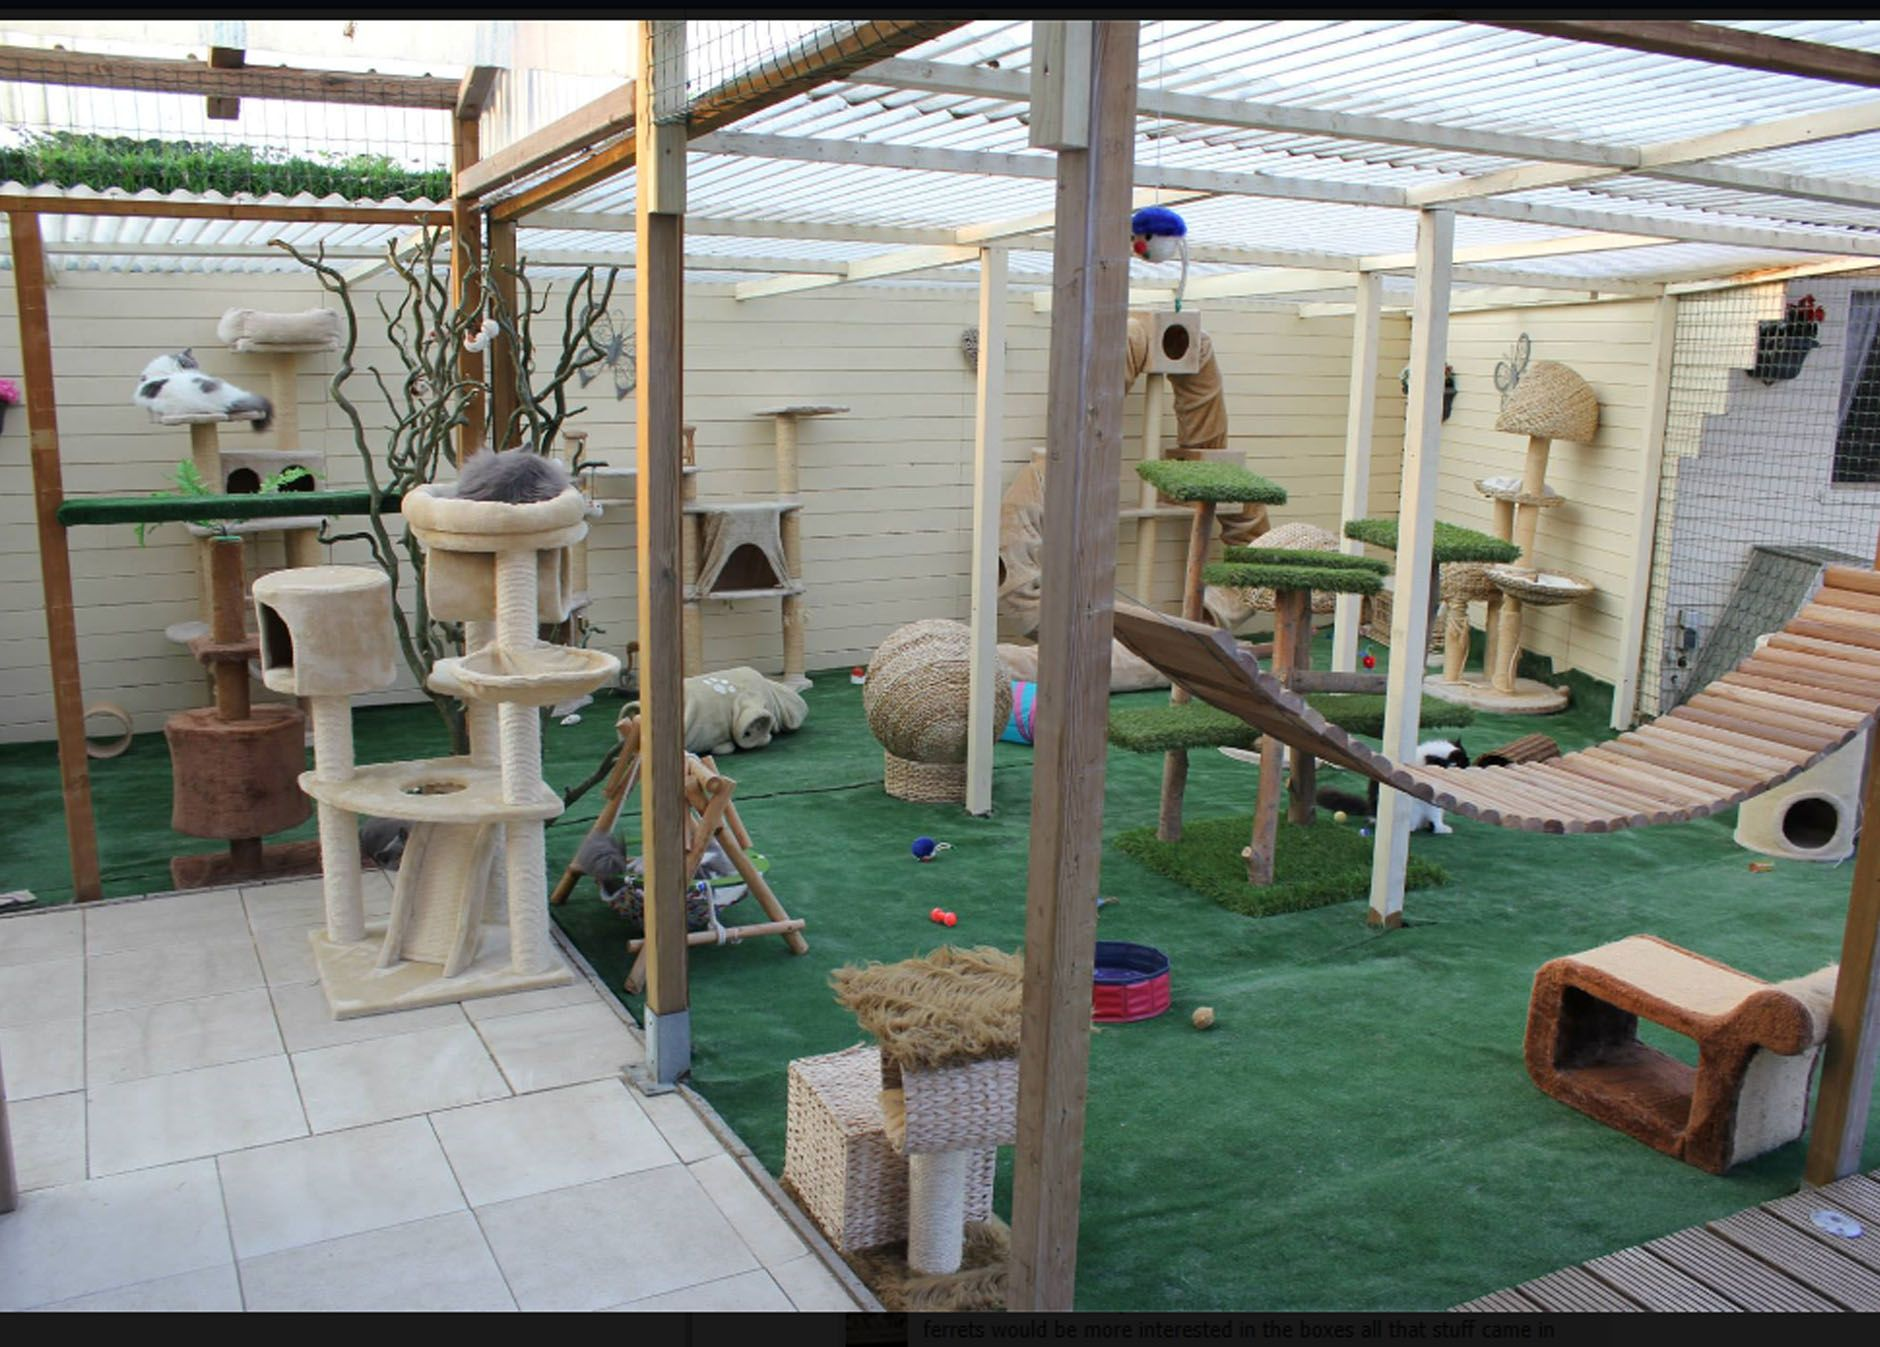 New Outdoor Cat Room I Want To Do This Some Day Con Imagenes